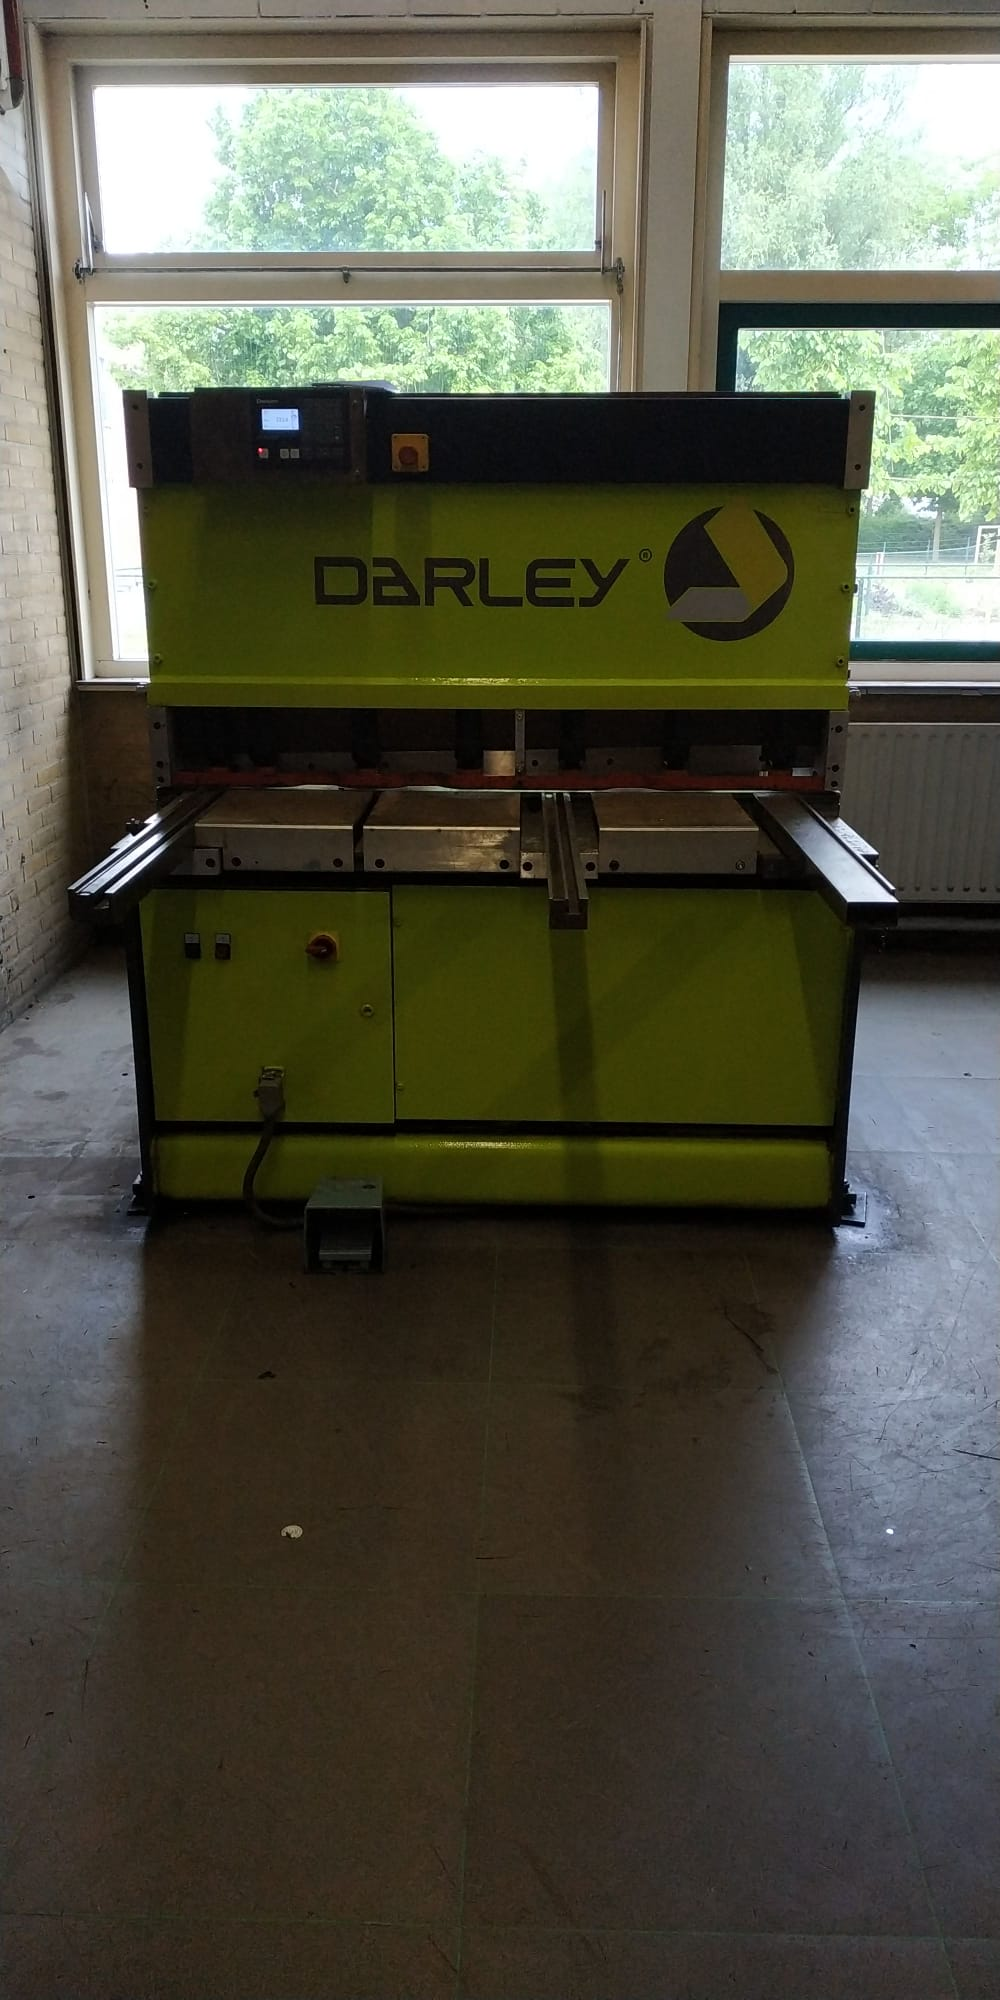 Experienced in Retrofitting all Darley machines!